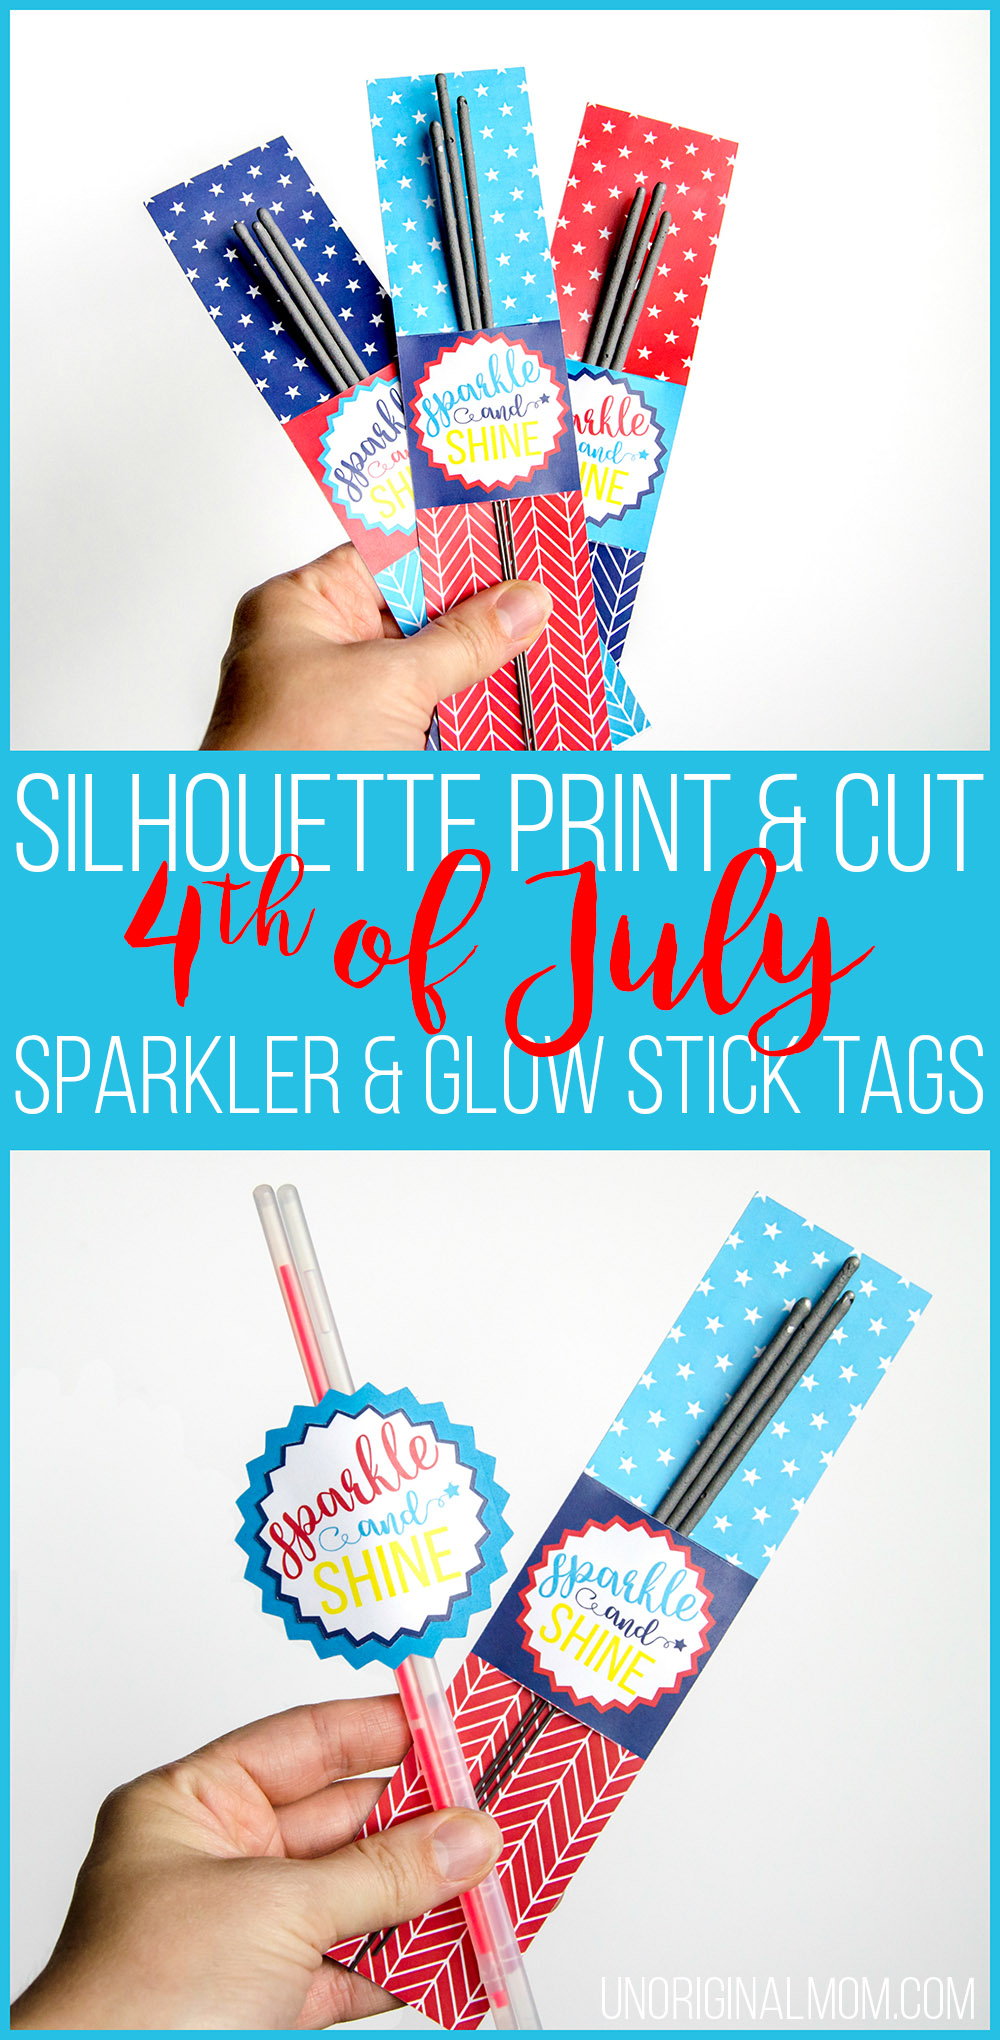 Tutorial and a free Silhouette cut file to print-and-cut sparkler tags and glow stick tags for the 4th of July! | free printable sparkler tags | free printable glow stick tags | 4th of july printables | 4th of july party | patriotic printables